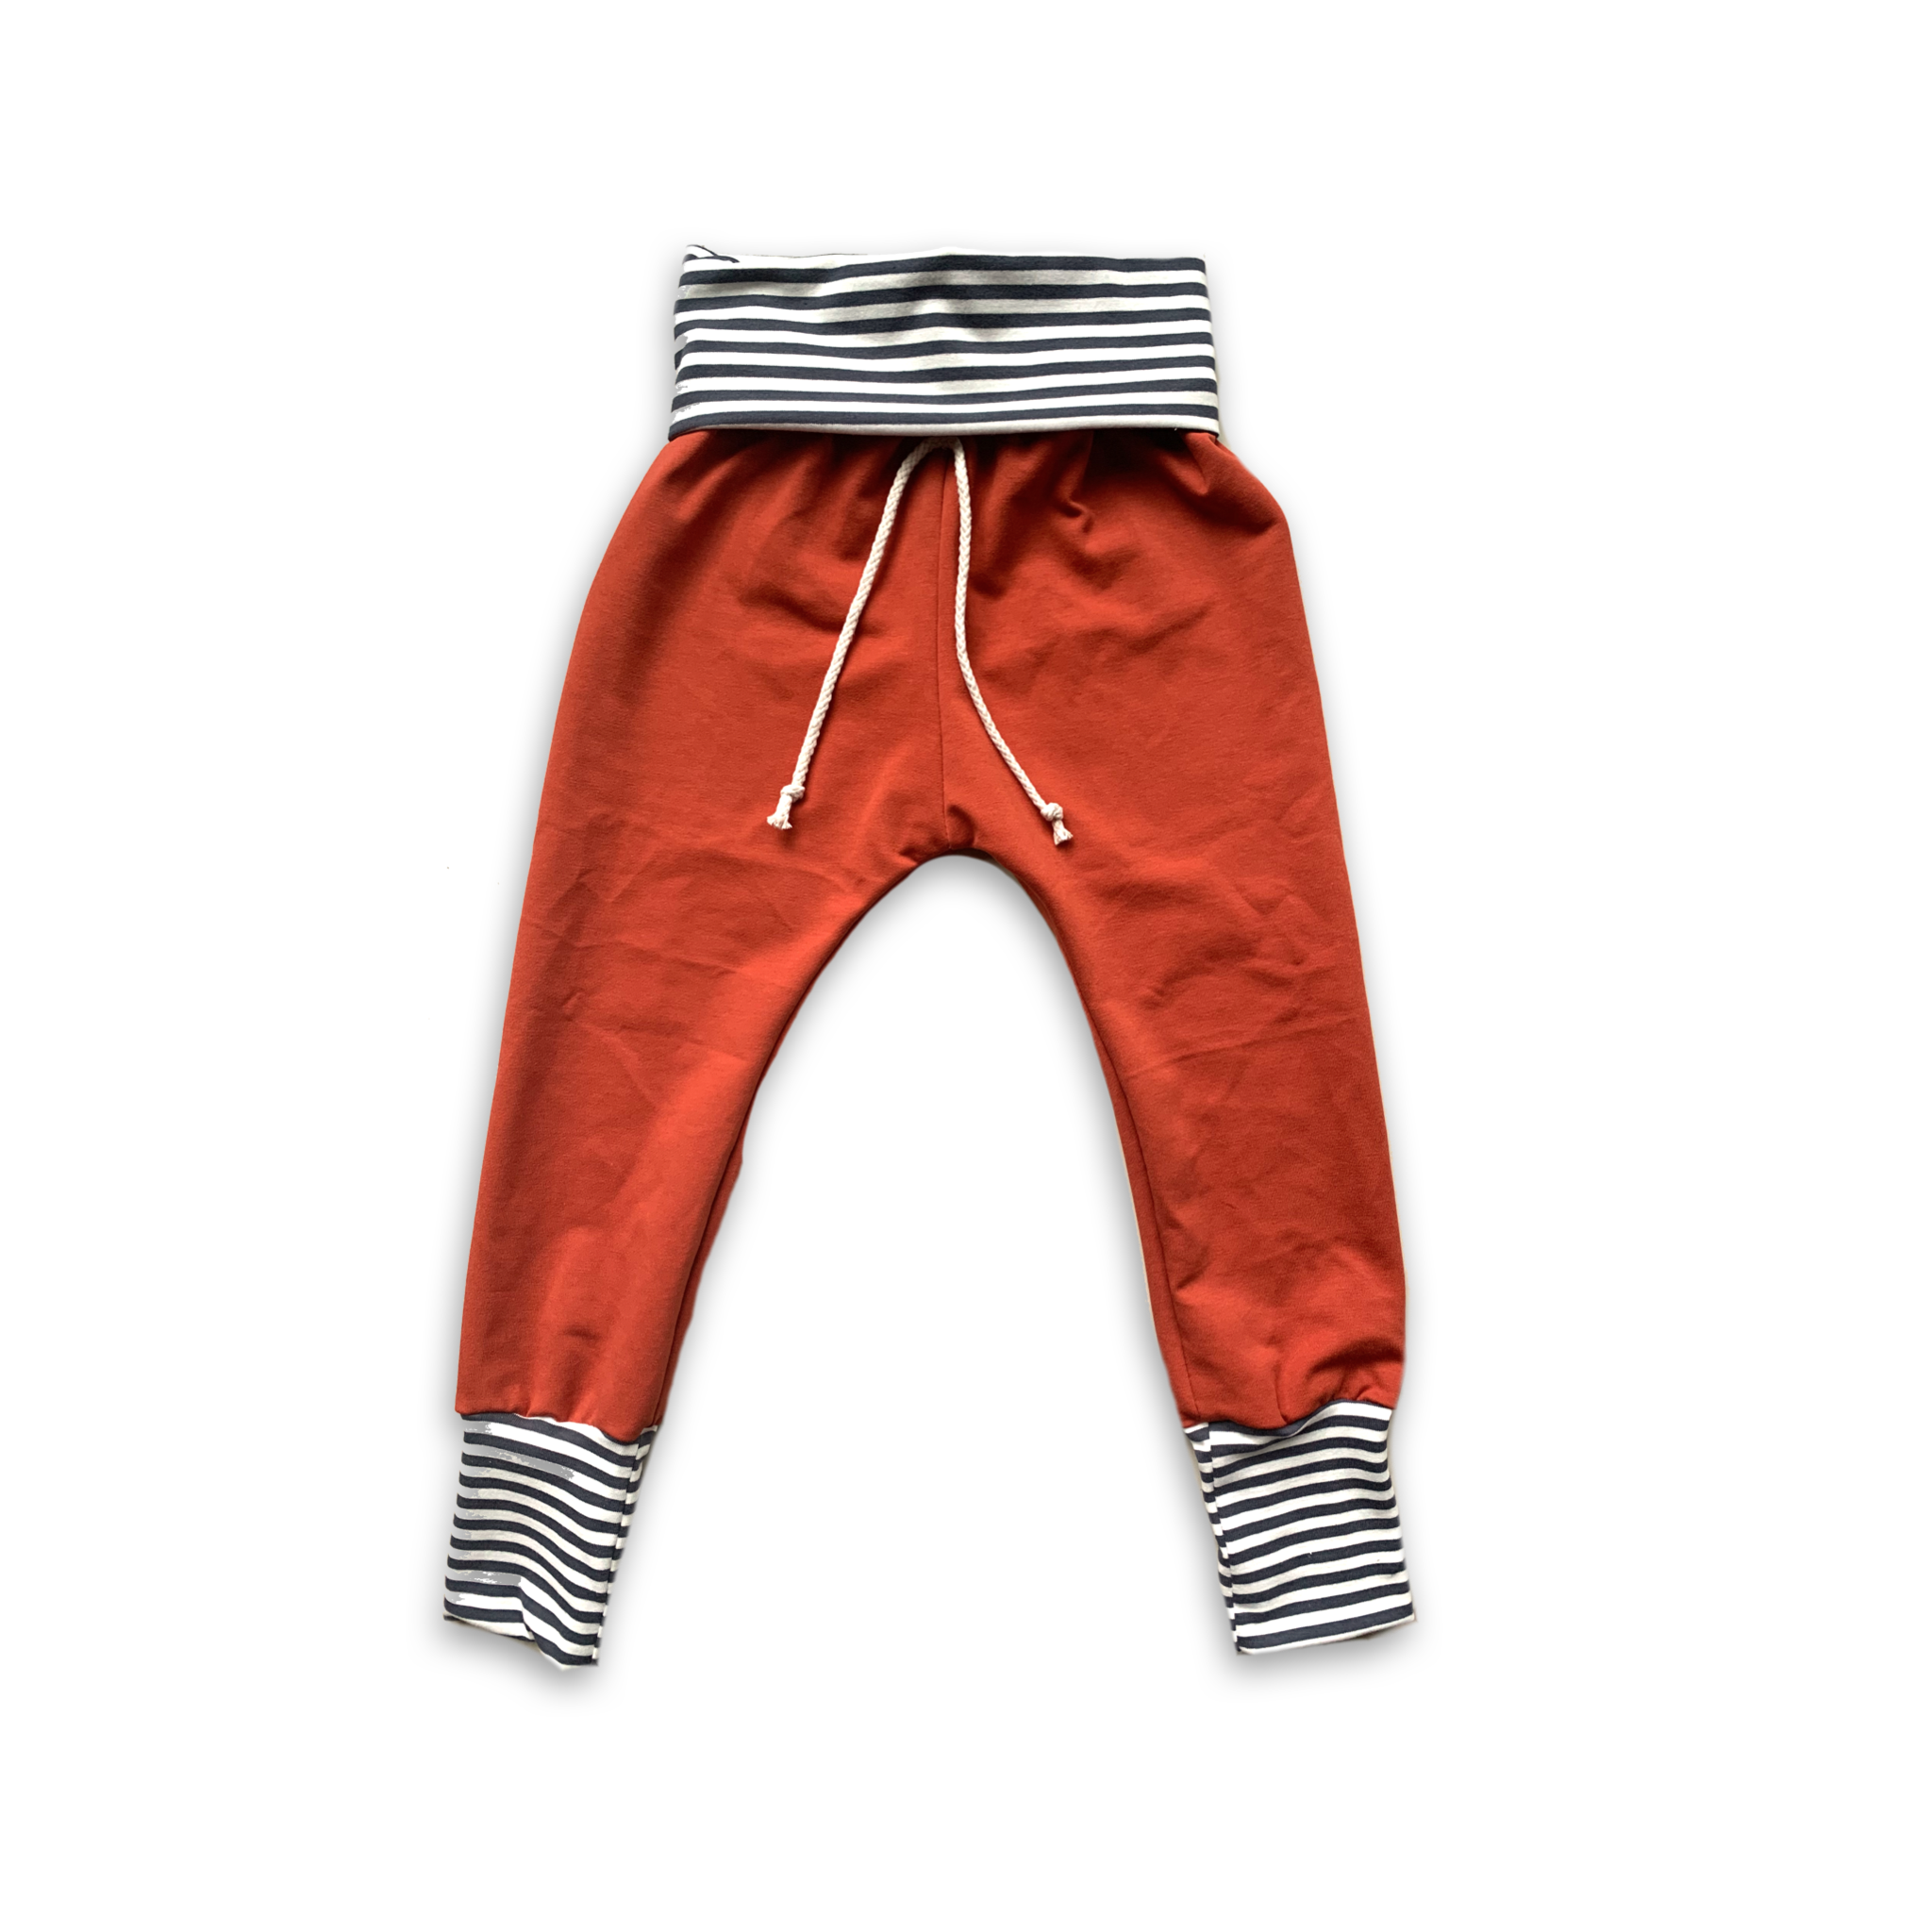 Infinity Cuff Joggers in Persimmon